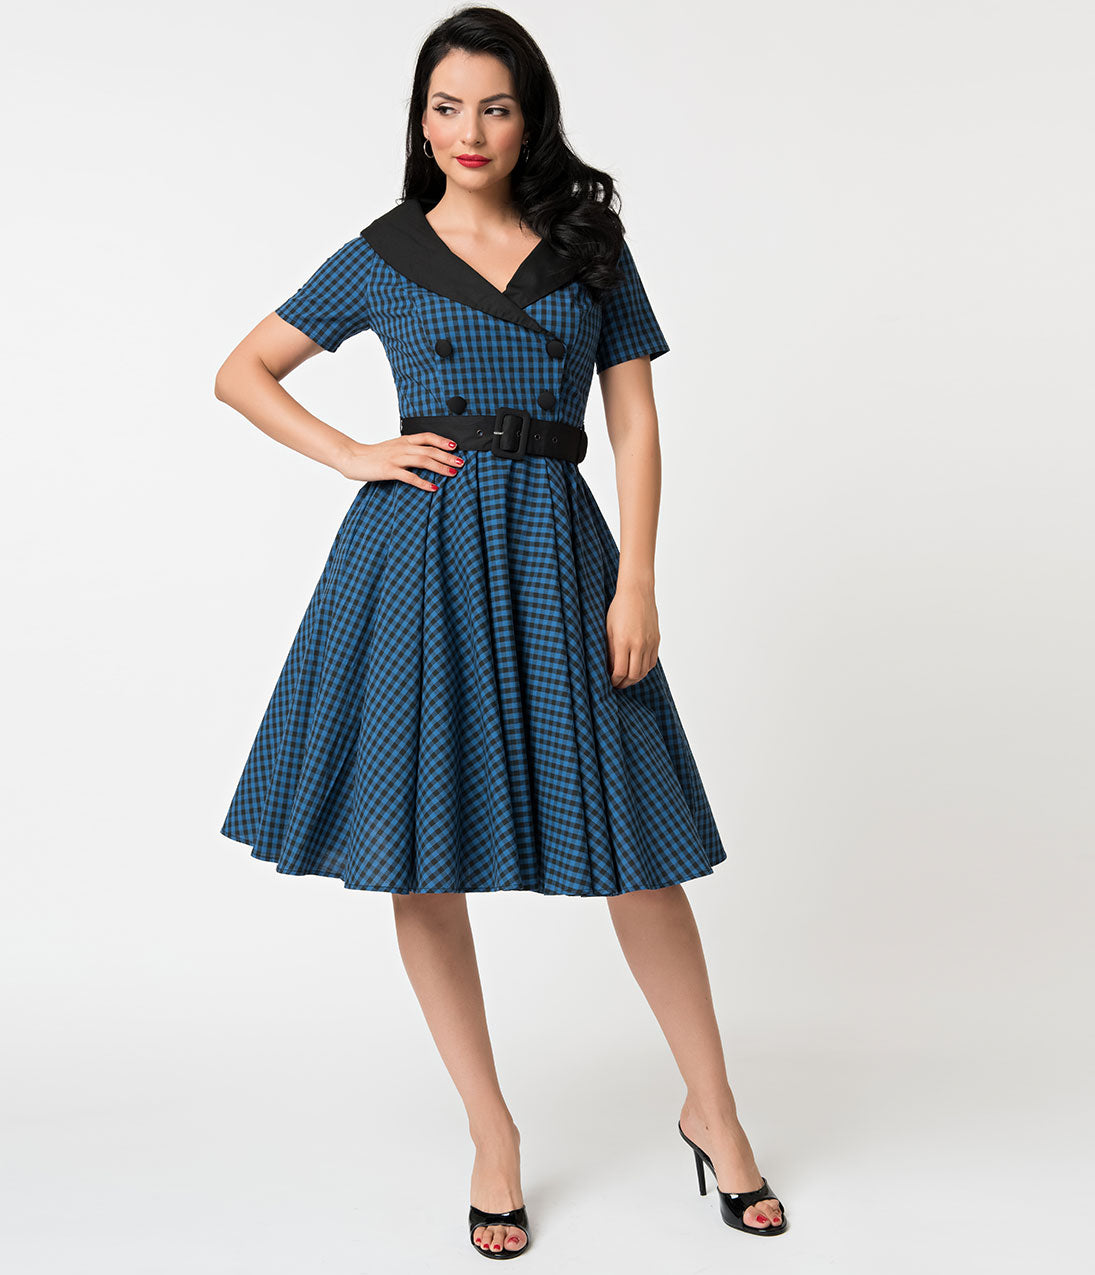 1950s Swing Dresses | 50s Swing Dress Hell Bunny 1950S Style Navy  Black Gingham Bridget Swing Dress $59.00 AT vintagedancer.com